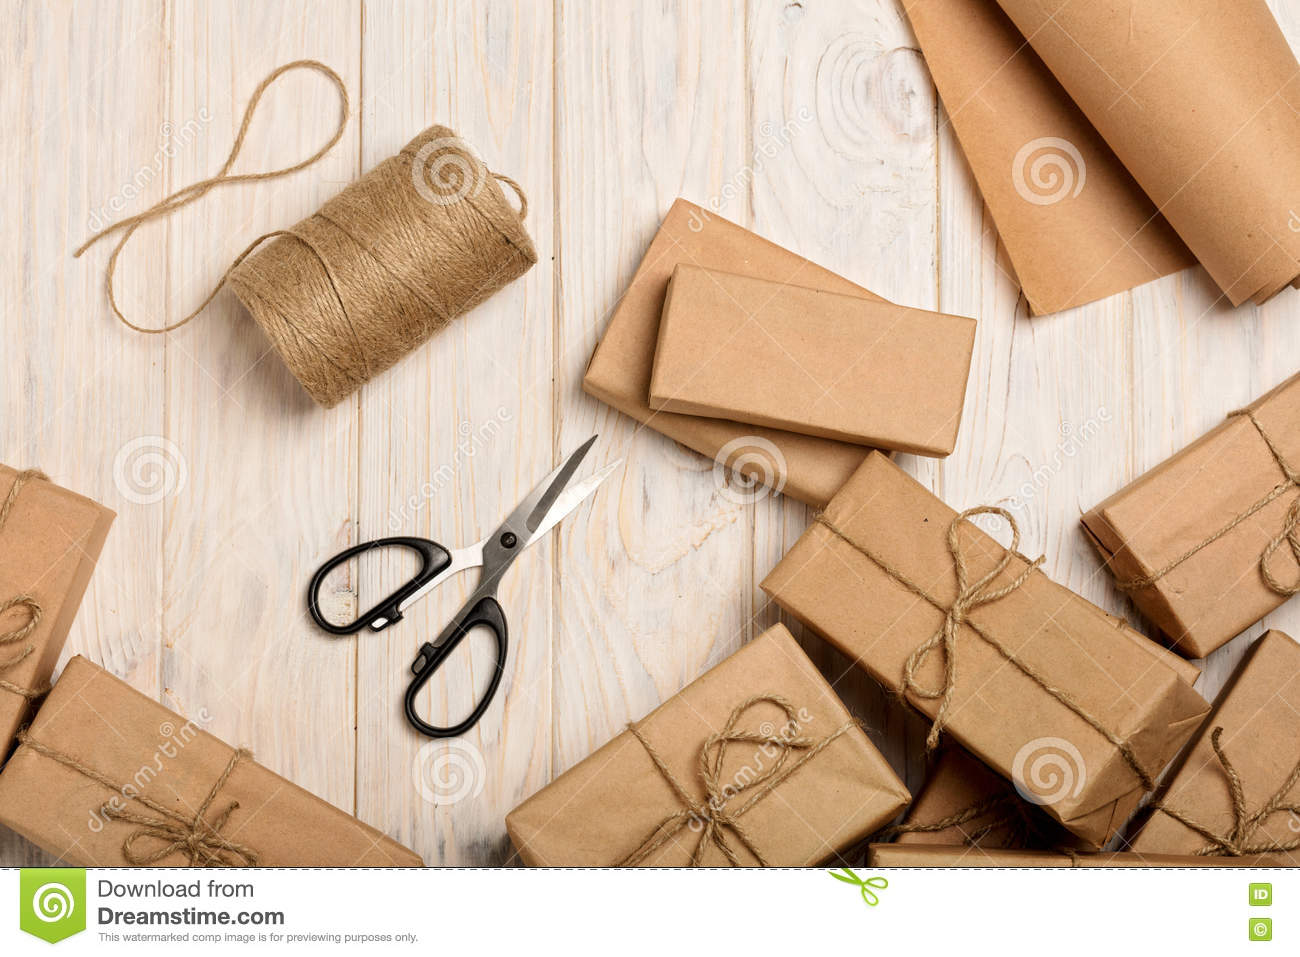 Wrapping Christmas gifts in Kraft paper and rope.